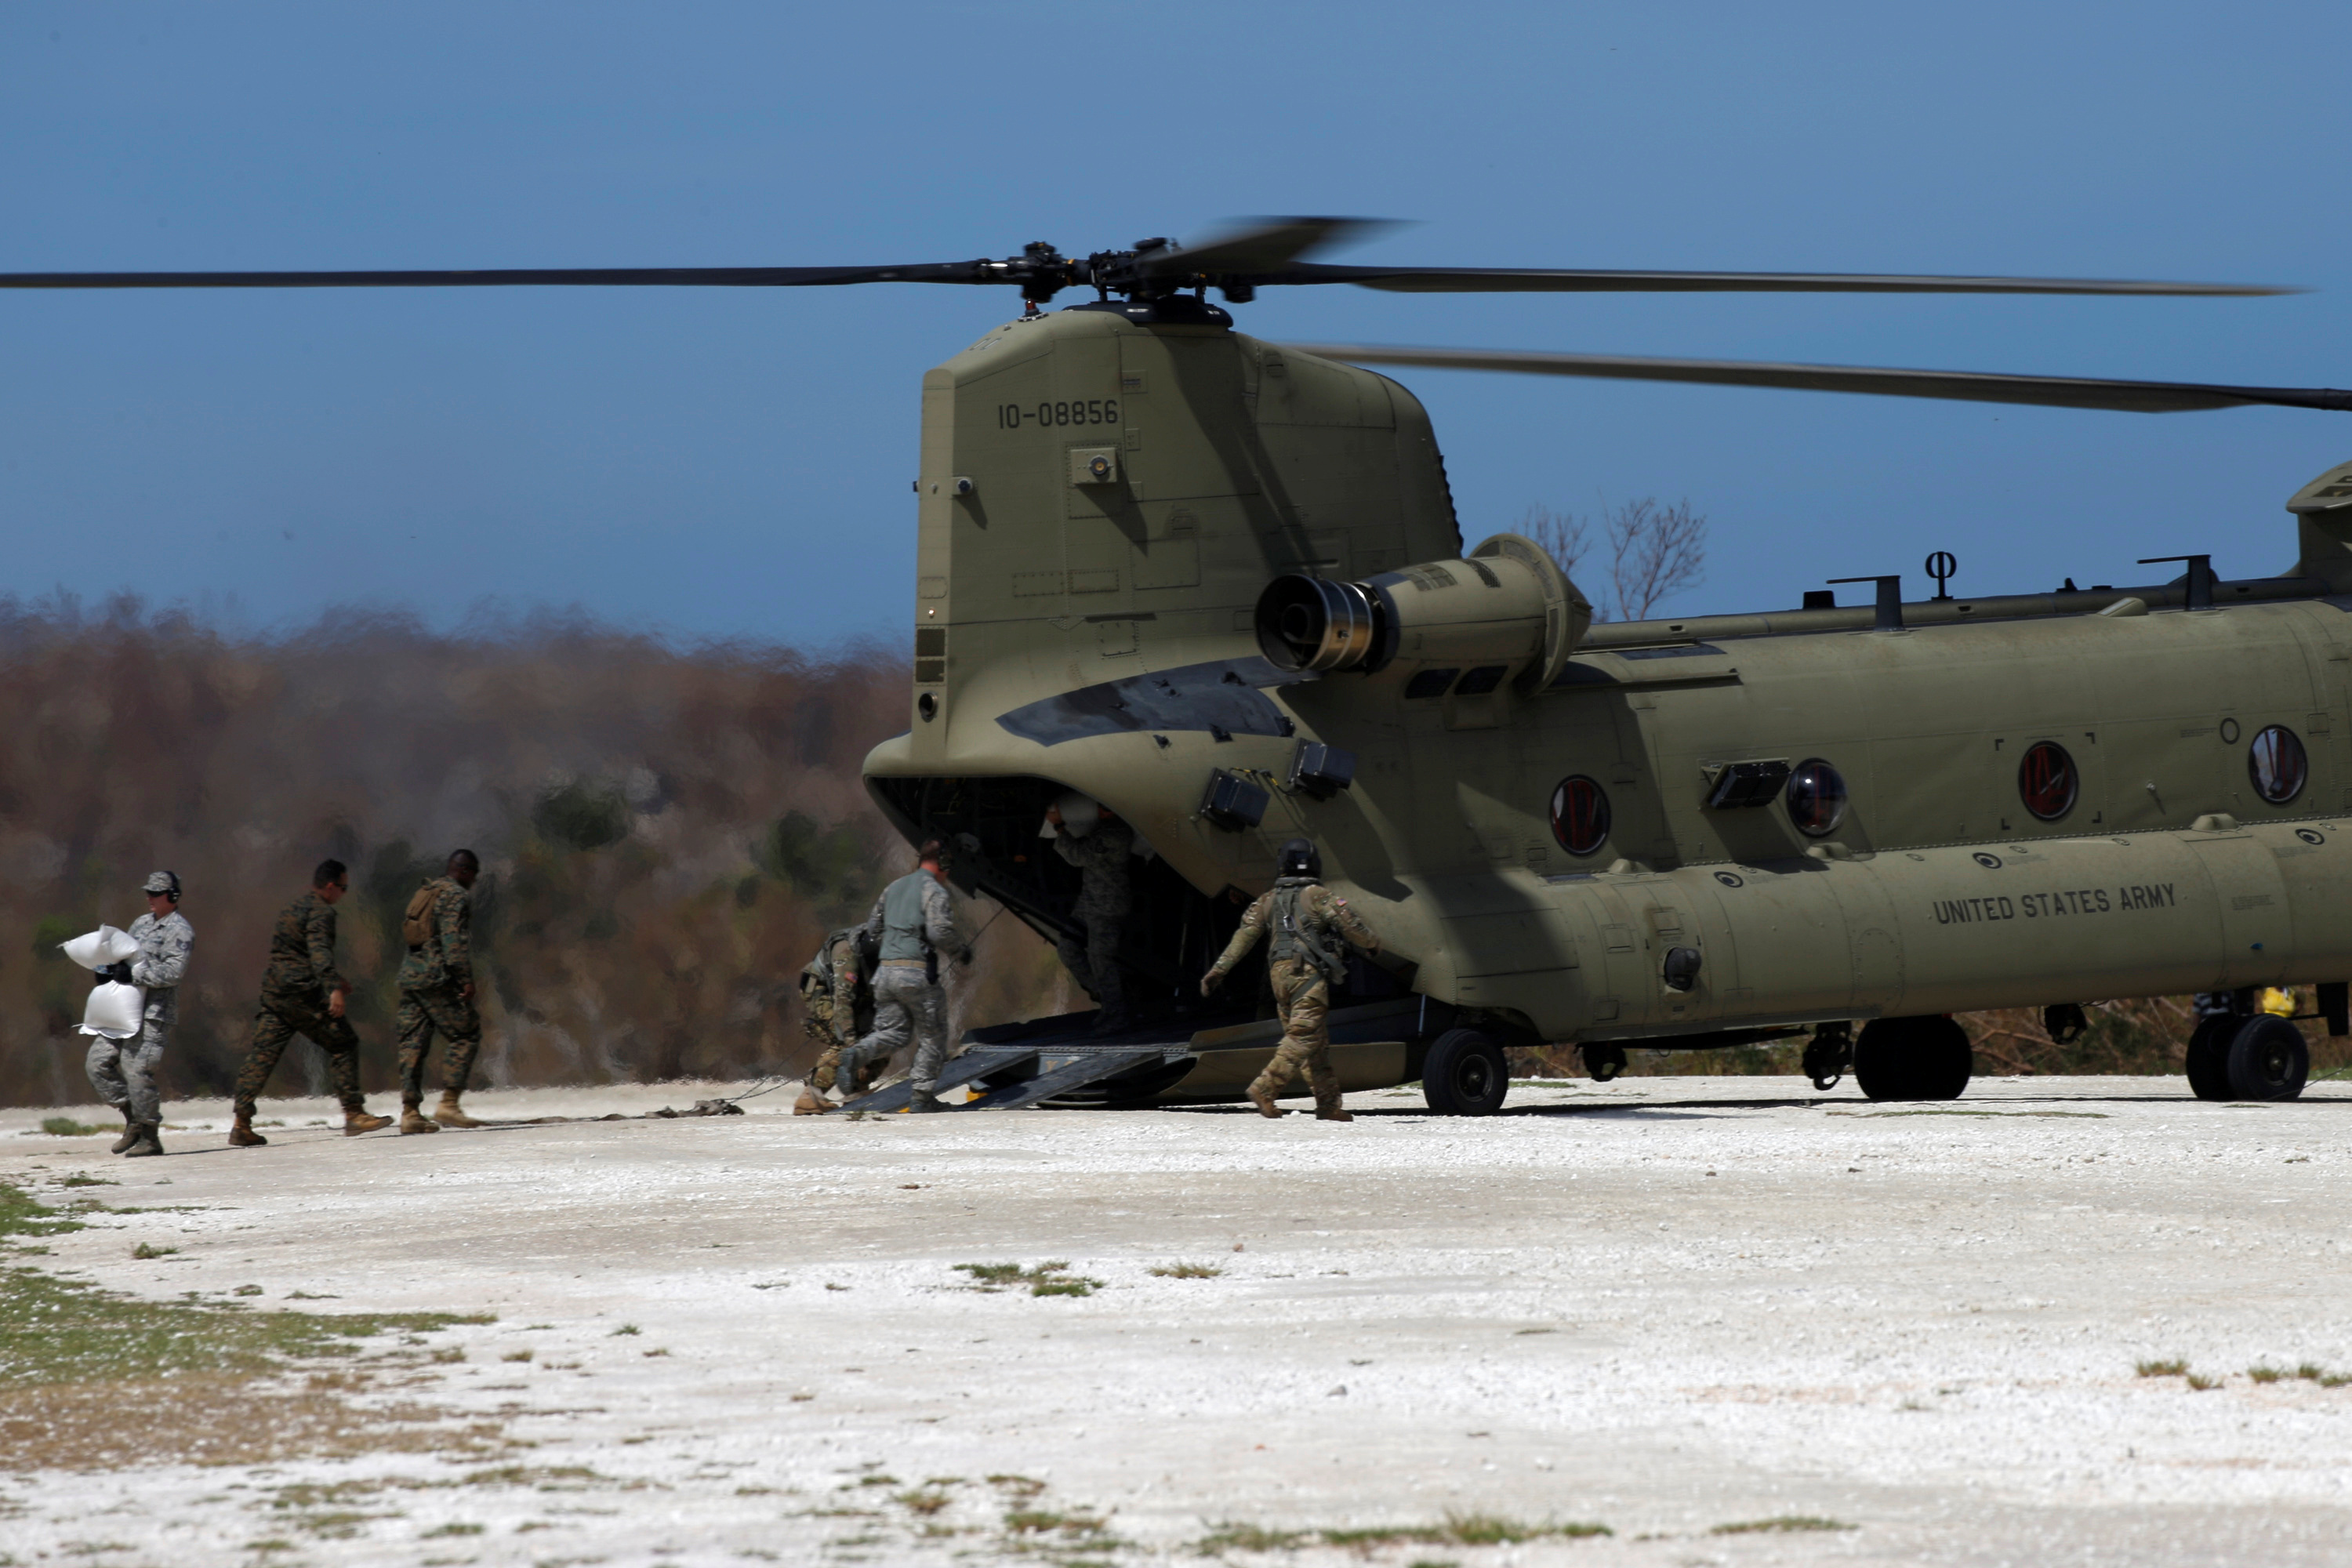 American soldiers deliver aid to parts of Haiti. The most immediate needs were food and clean water. Photo by Carlos Garcia Rawlins/Reuters